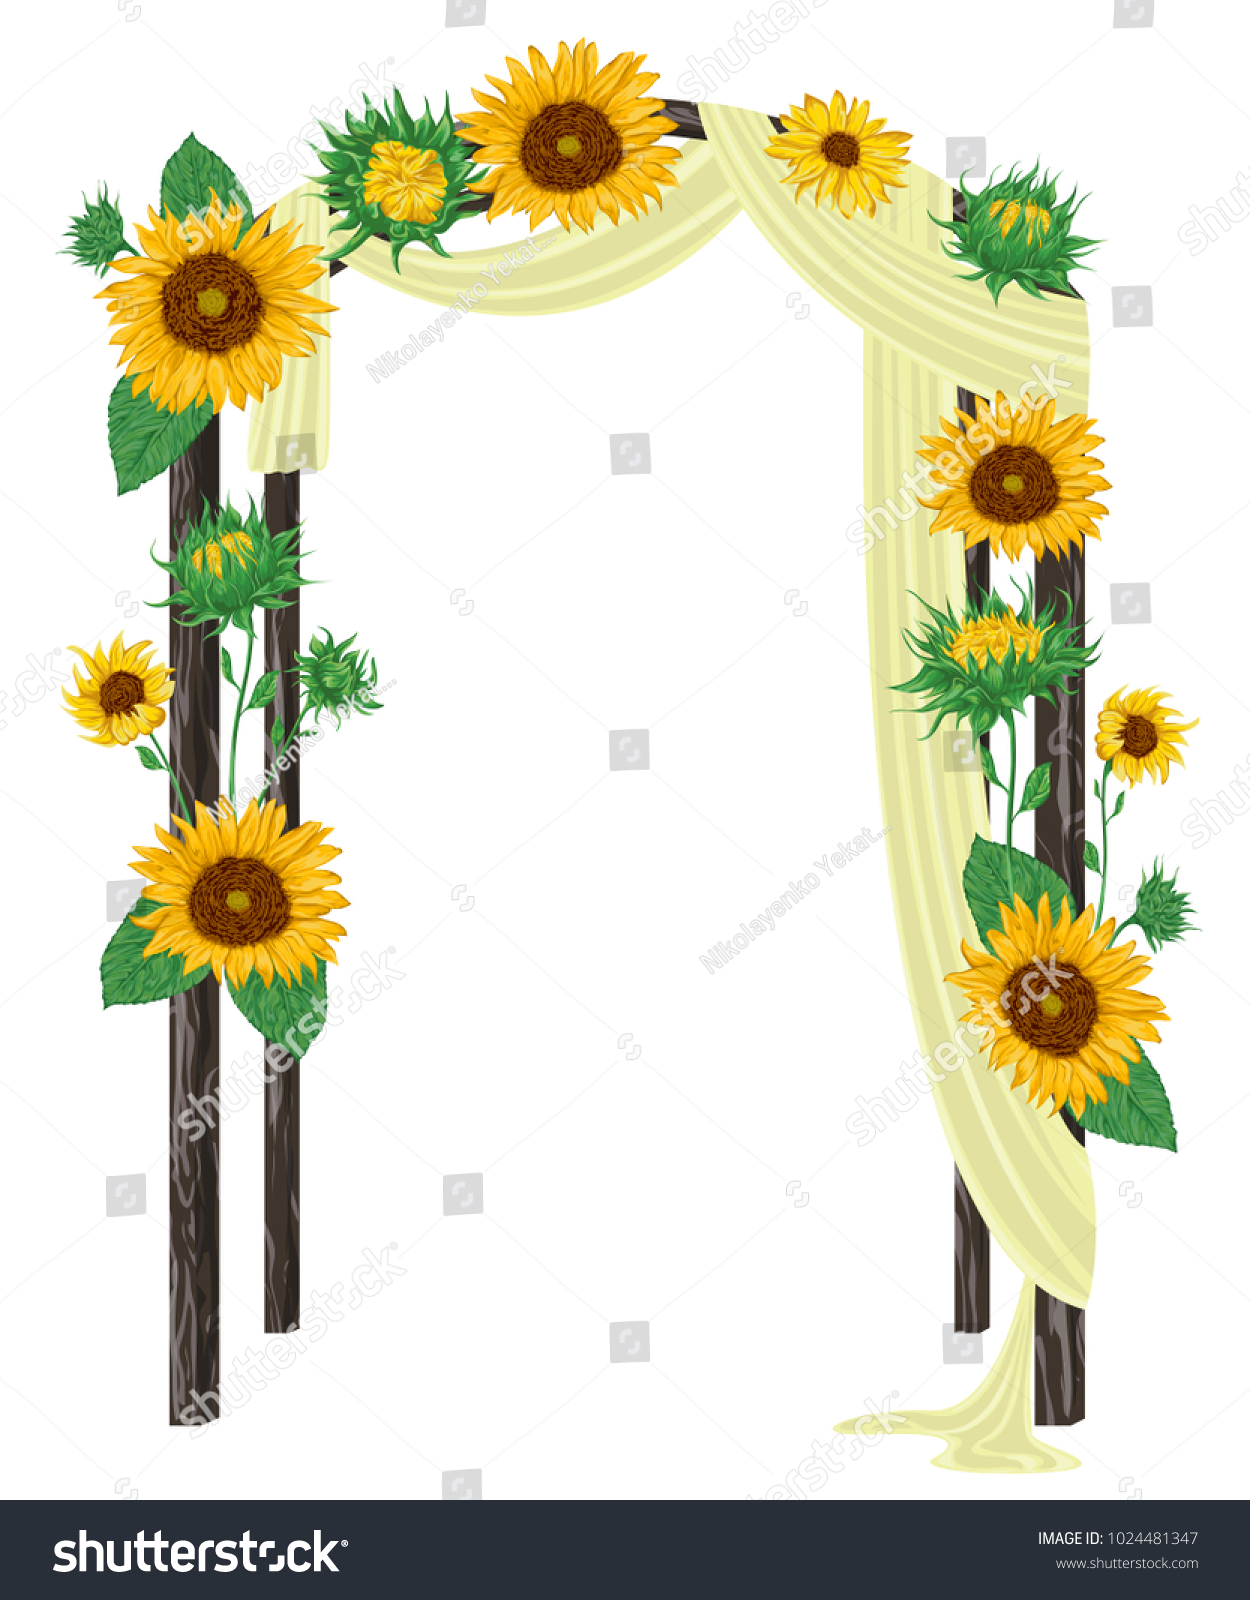 Outstanding Wedding Flowers With Sunflowers Pictures - The Wedding ...